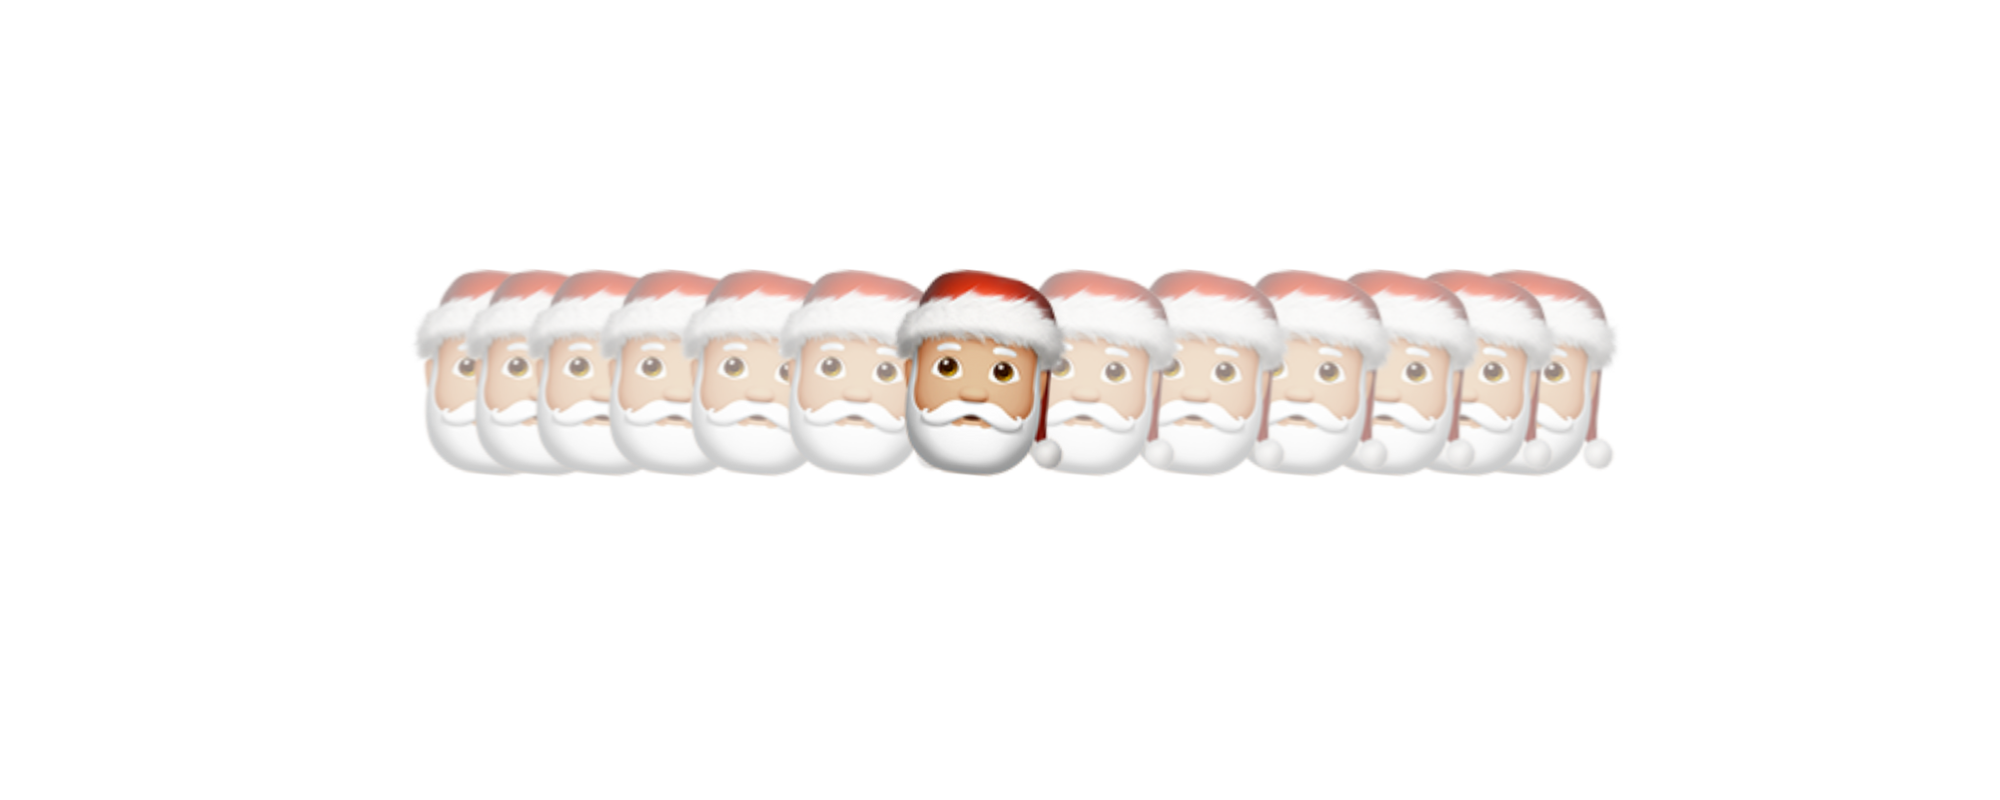 Concurrency, parallelism, and the many threads of Santa Claus ?